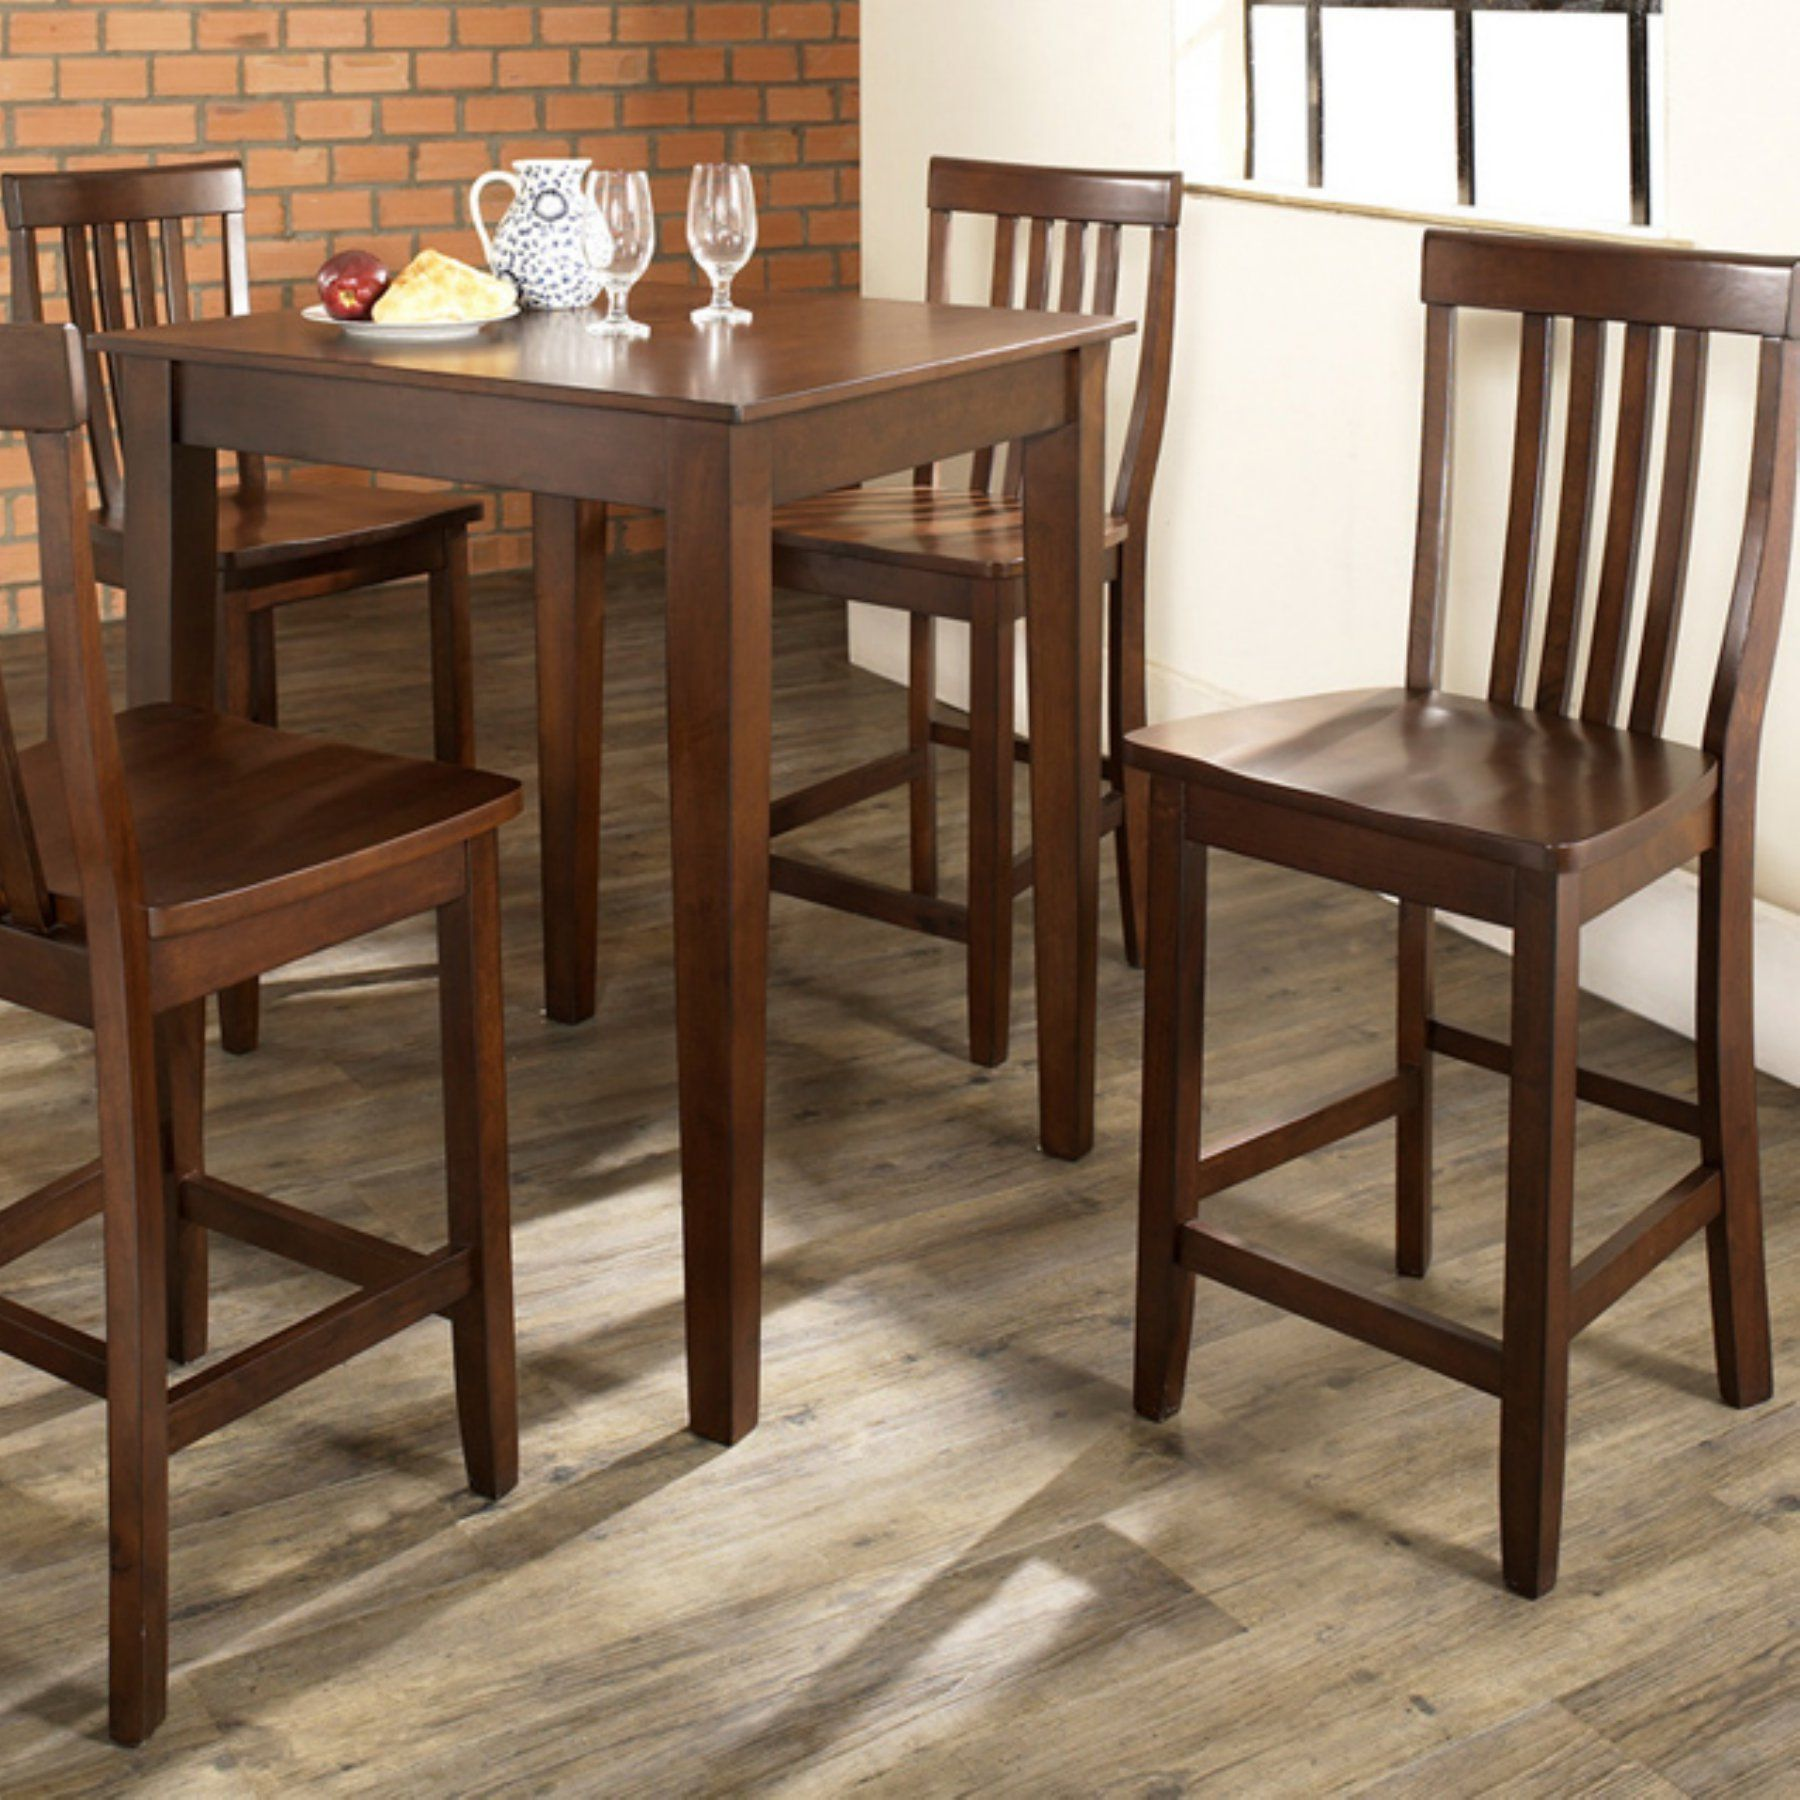 Crosley 5 Piece Pub High Dining Set with Tapered Leg and School